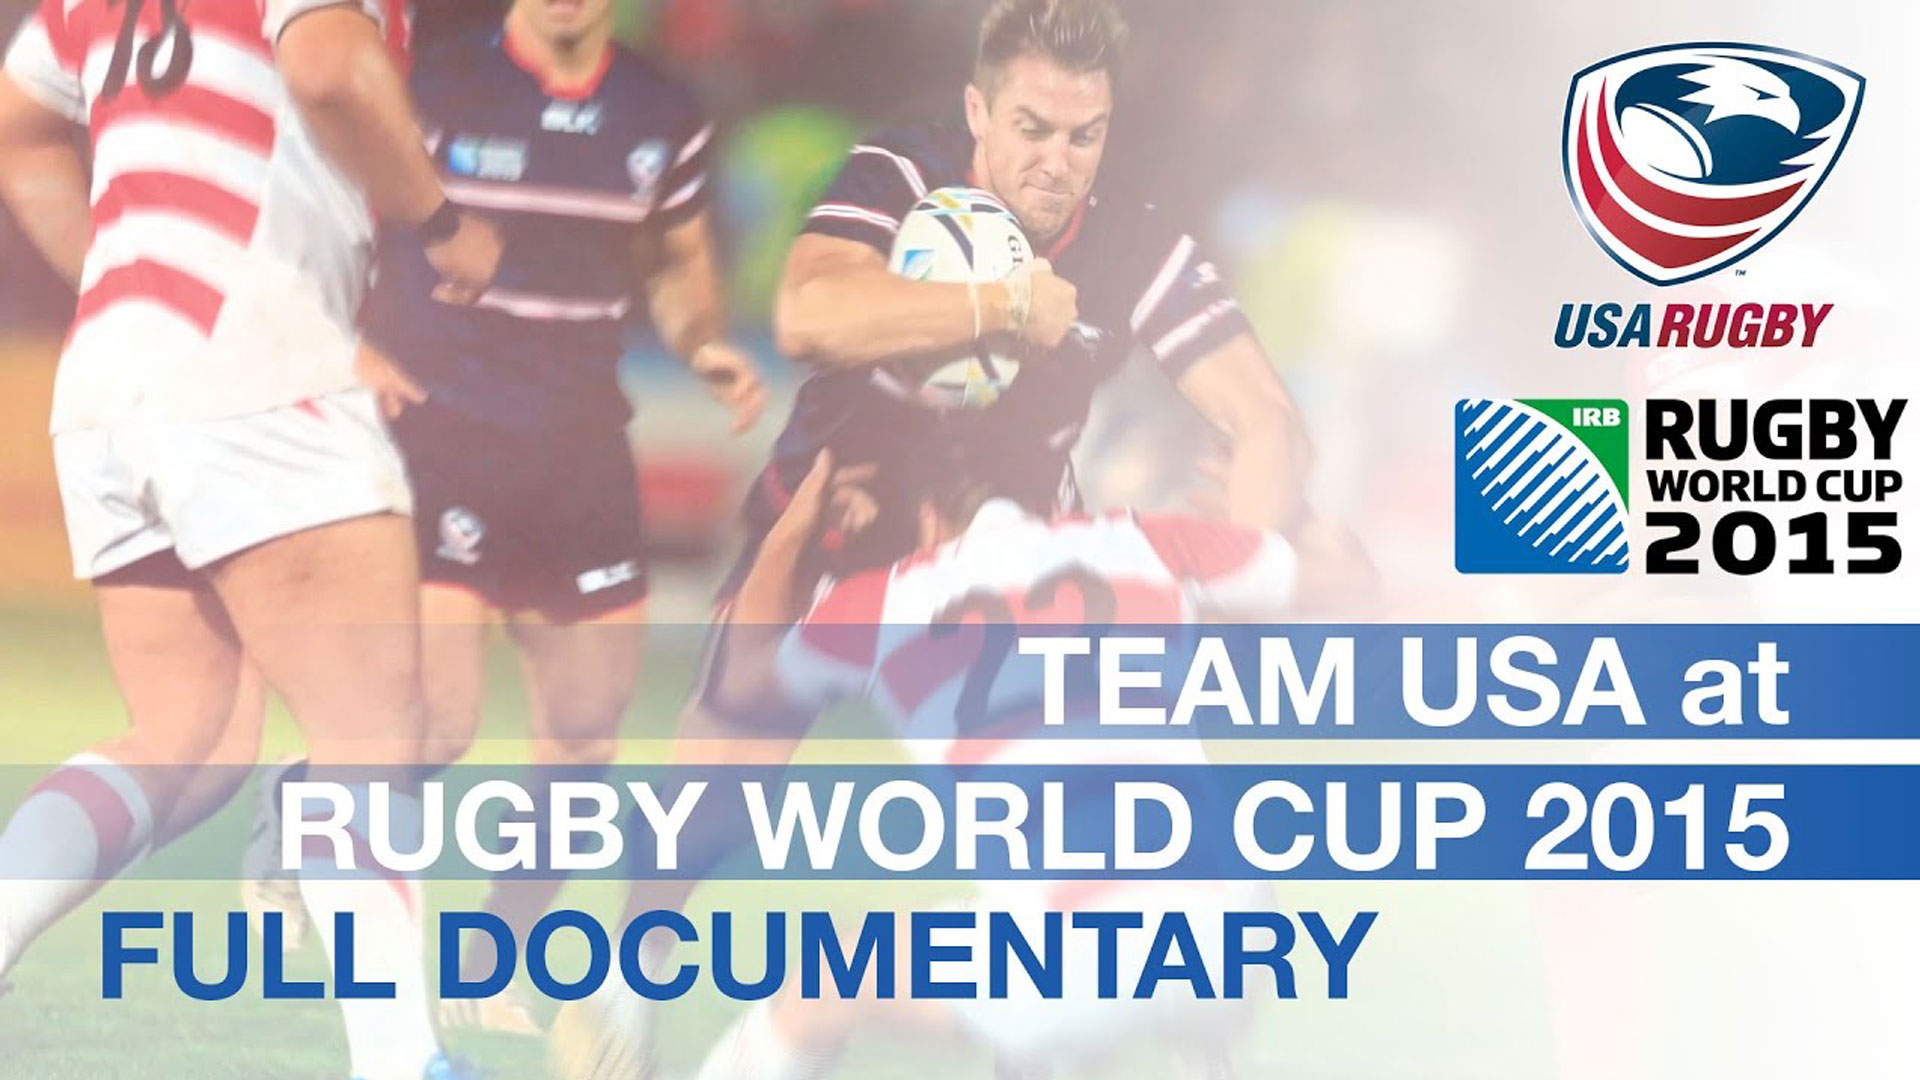 USA at Rugby World Cup 2015 - Behind the scenes sports documentary about the USA Eagles